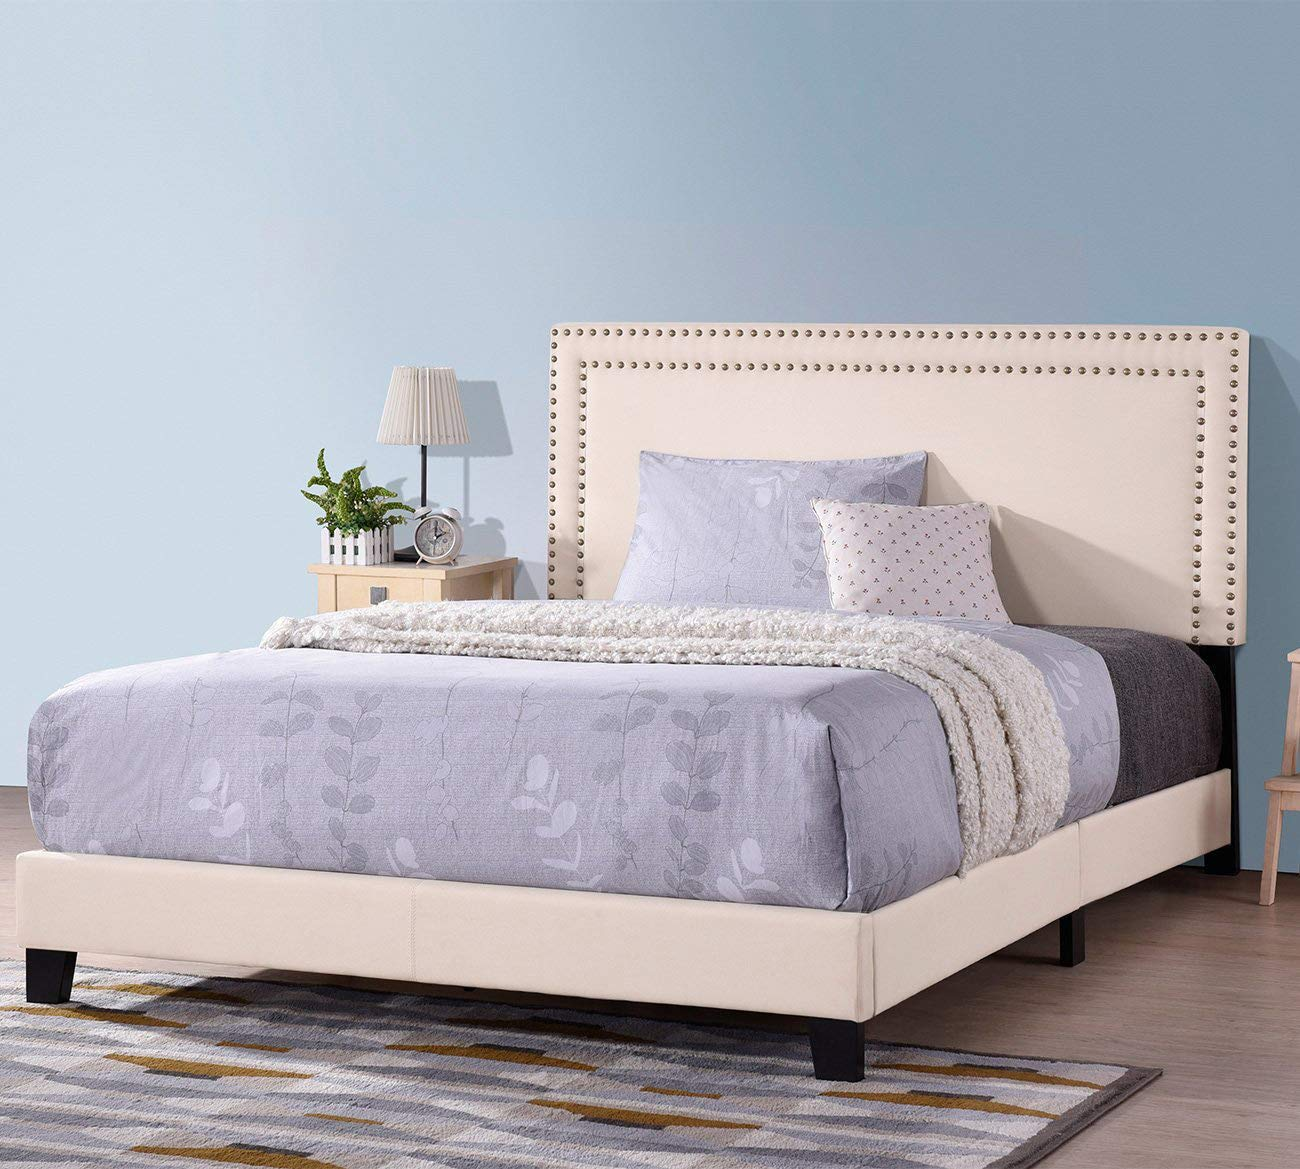 Upholstered Bed Frame Full Queen King, WeYoung Beige Platform Bed with Wooden Slat Support and Tufted Headboard Nailhead Detail Box Spring Required Queen